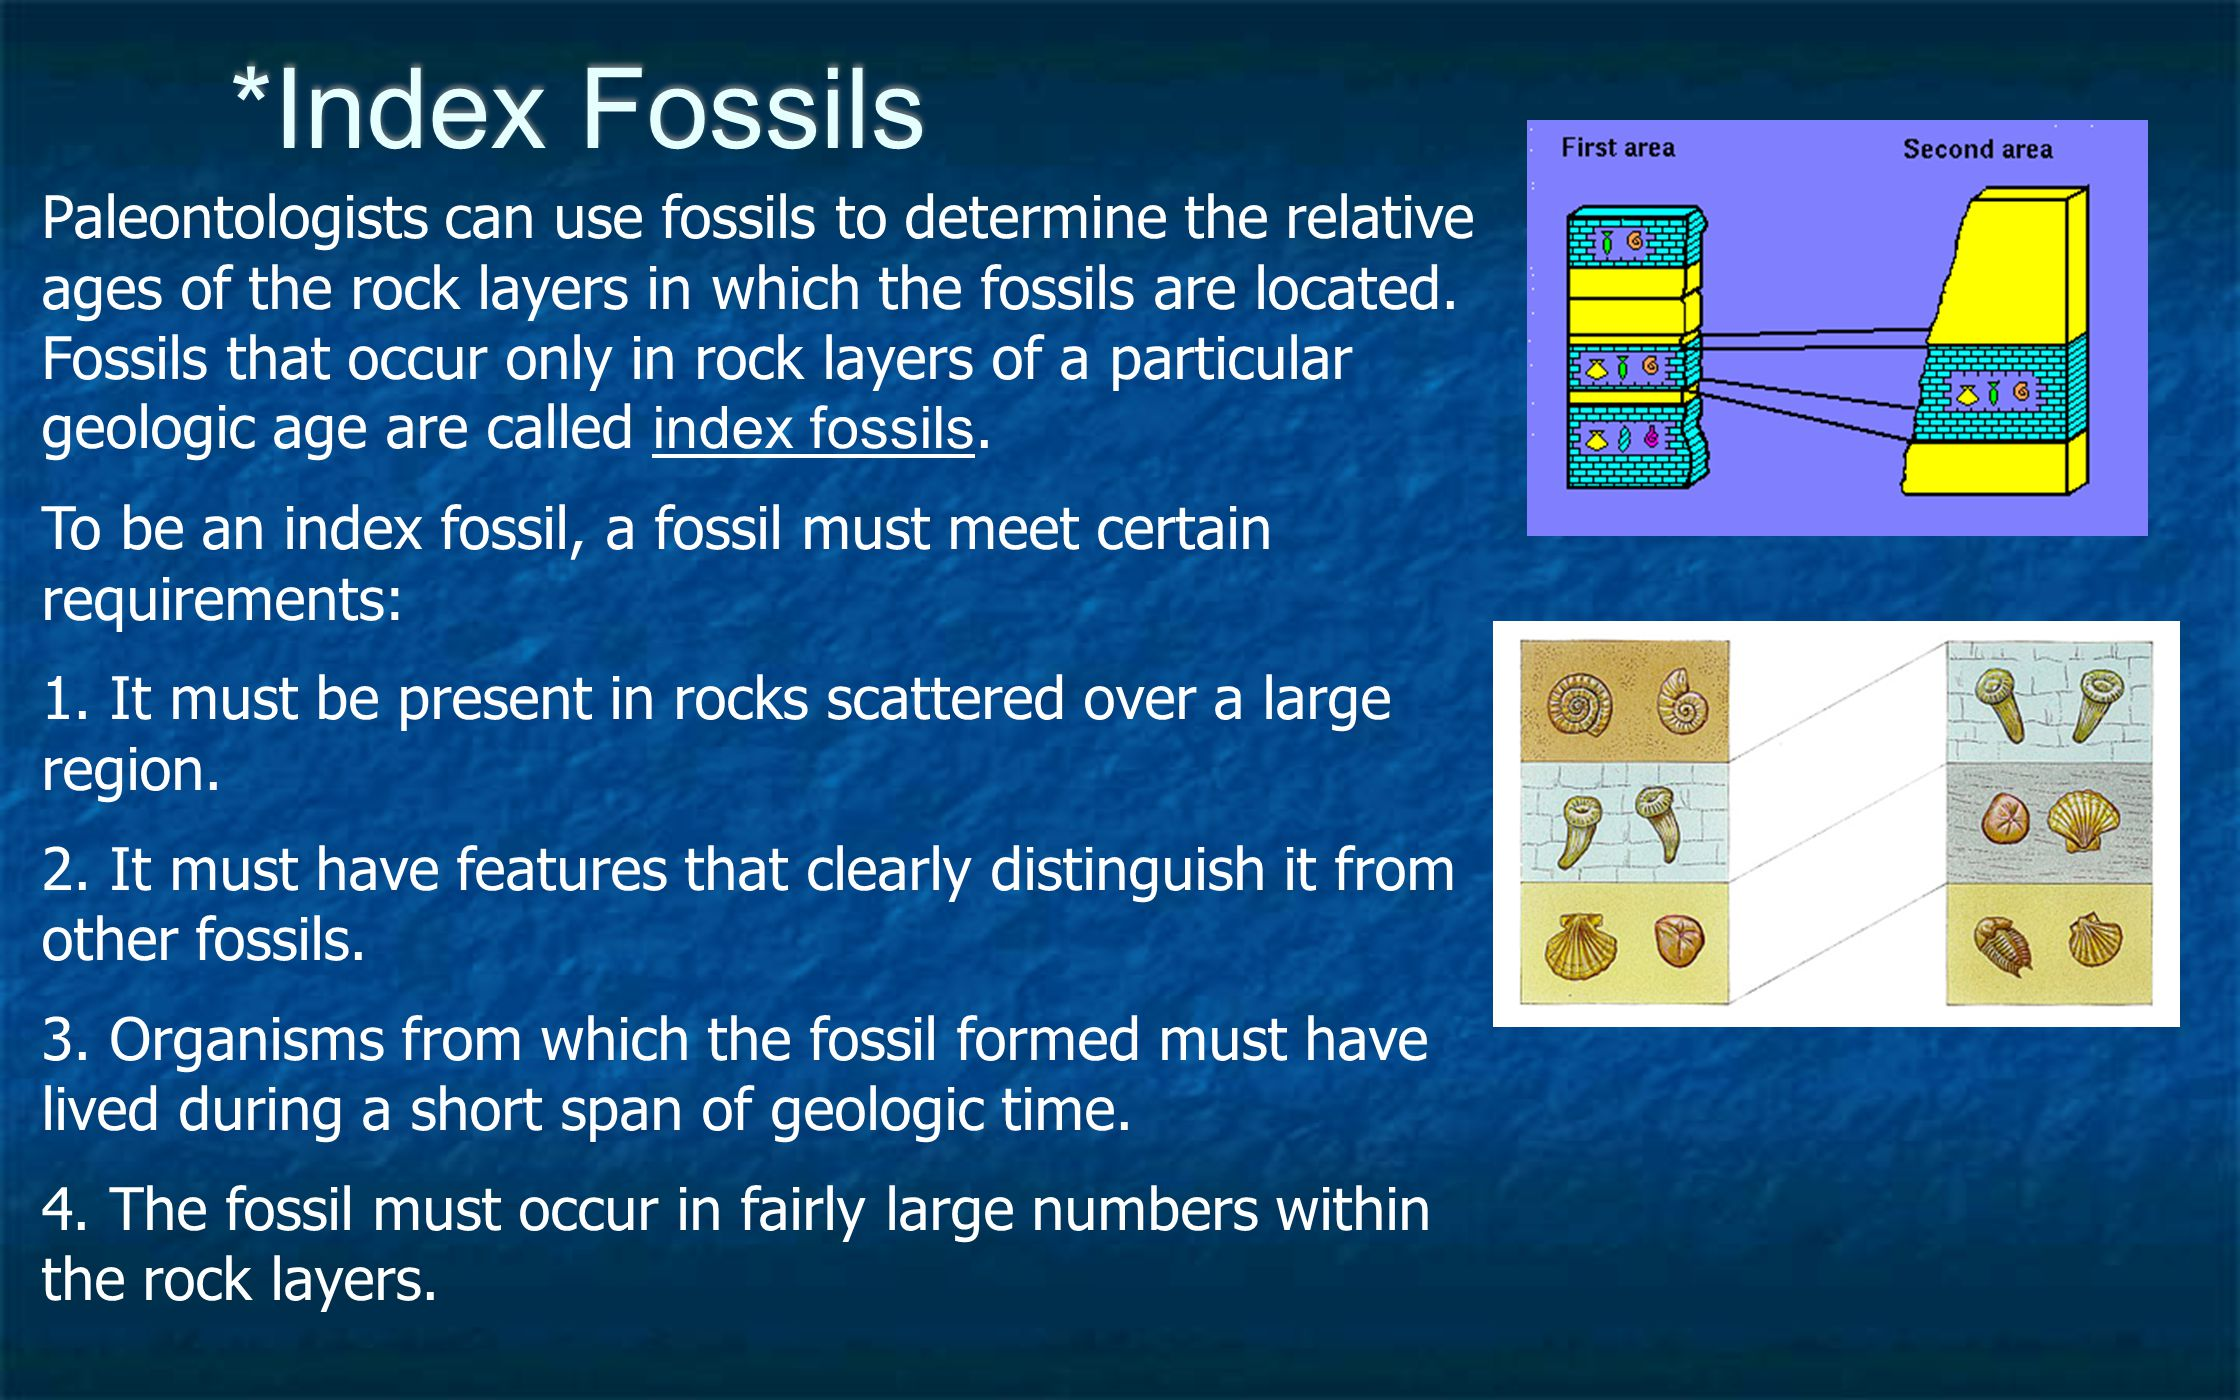 *Index Fossils Paleontologists can use fossils to determine the relative ages of the rock layers in which the fossils are located. Fossils that occur